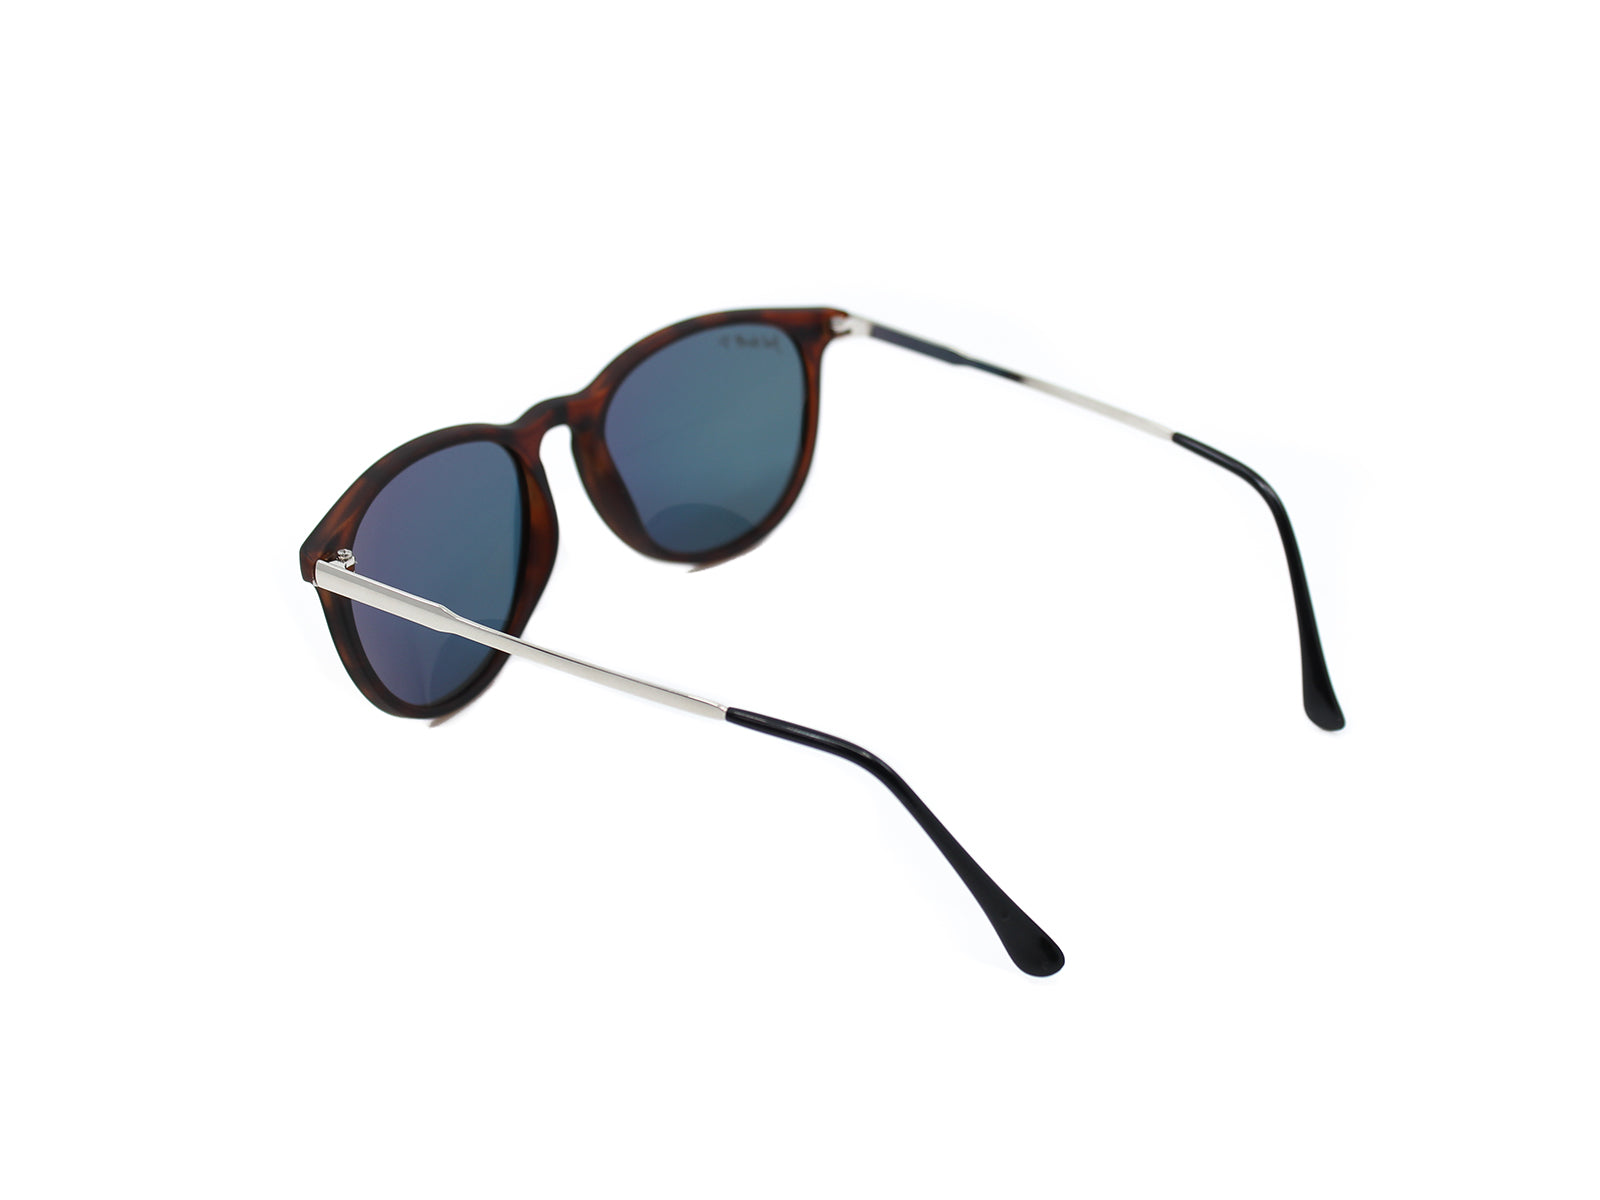 Porters - Hanovers: Black/ Mirrored Blue Polarized